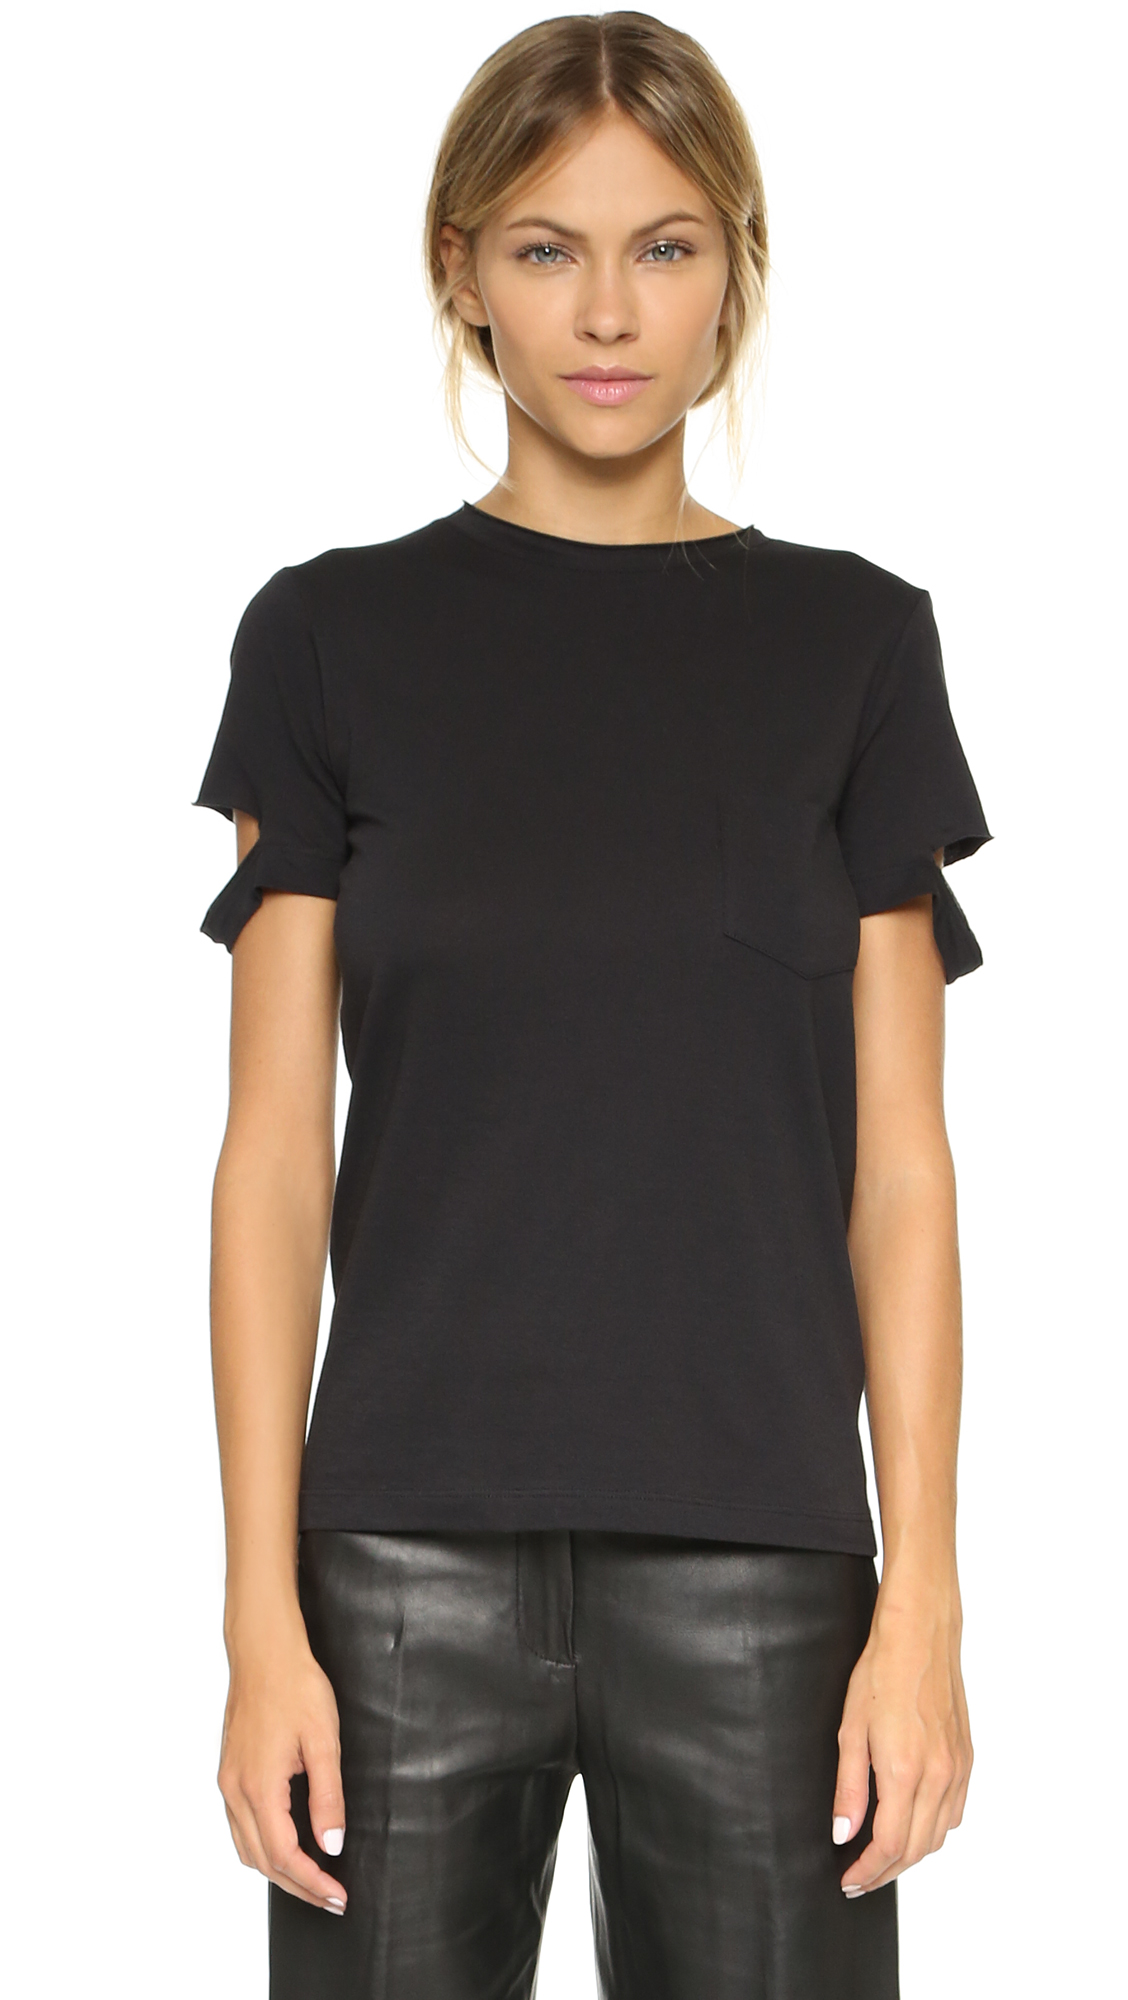 Helmut Lang Pocket Tee - Black